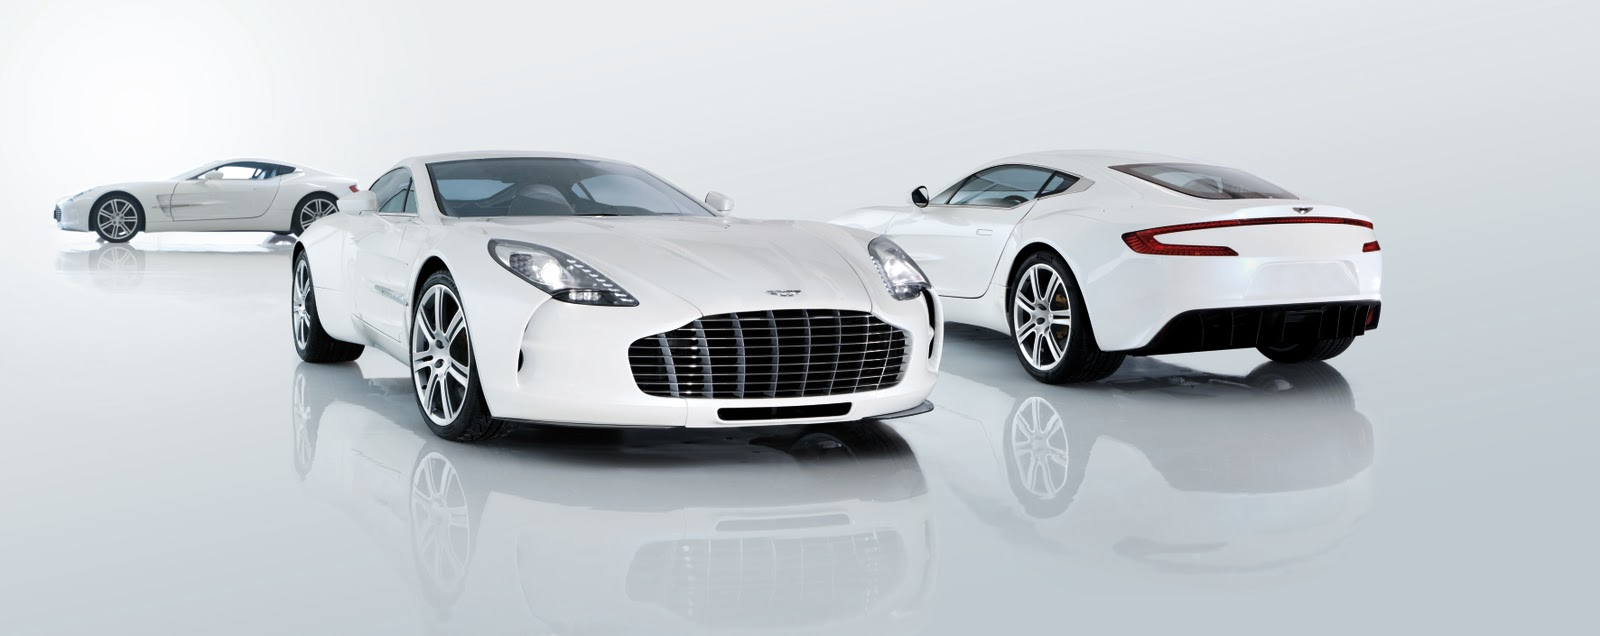 Aston Martin One 77 Pictures Wallpapers 1600x636